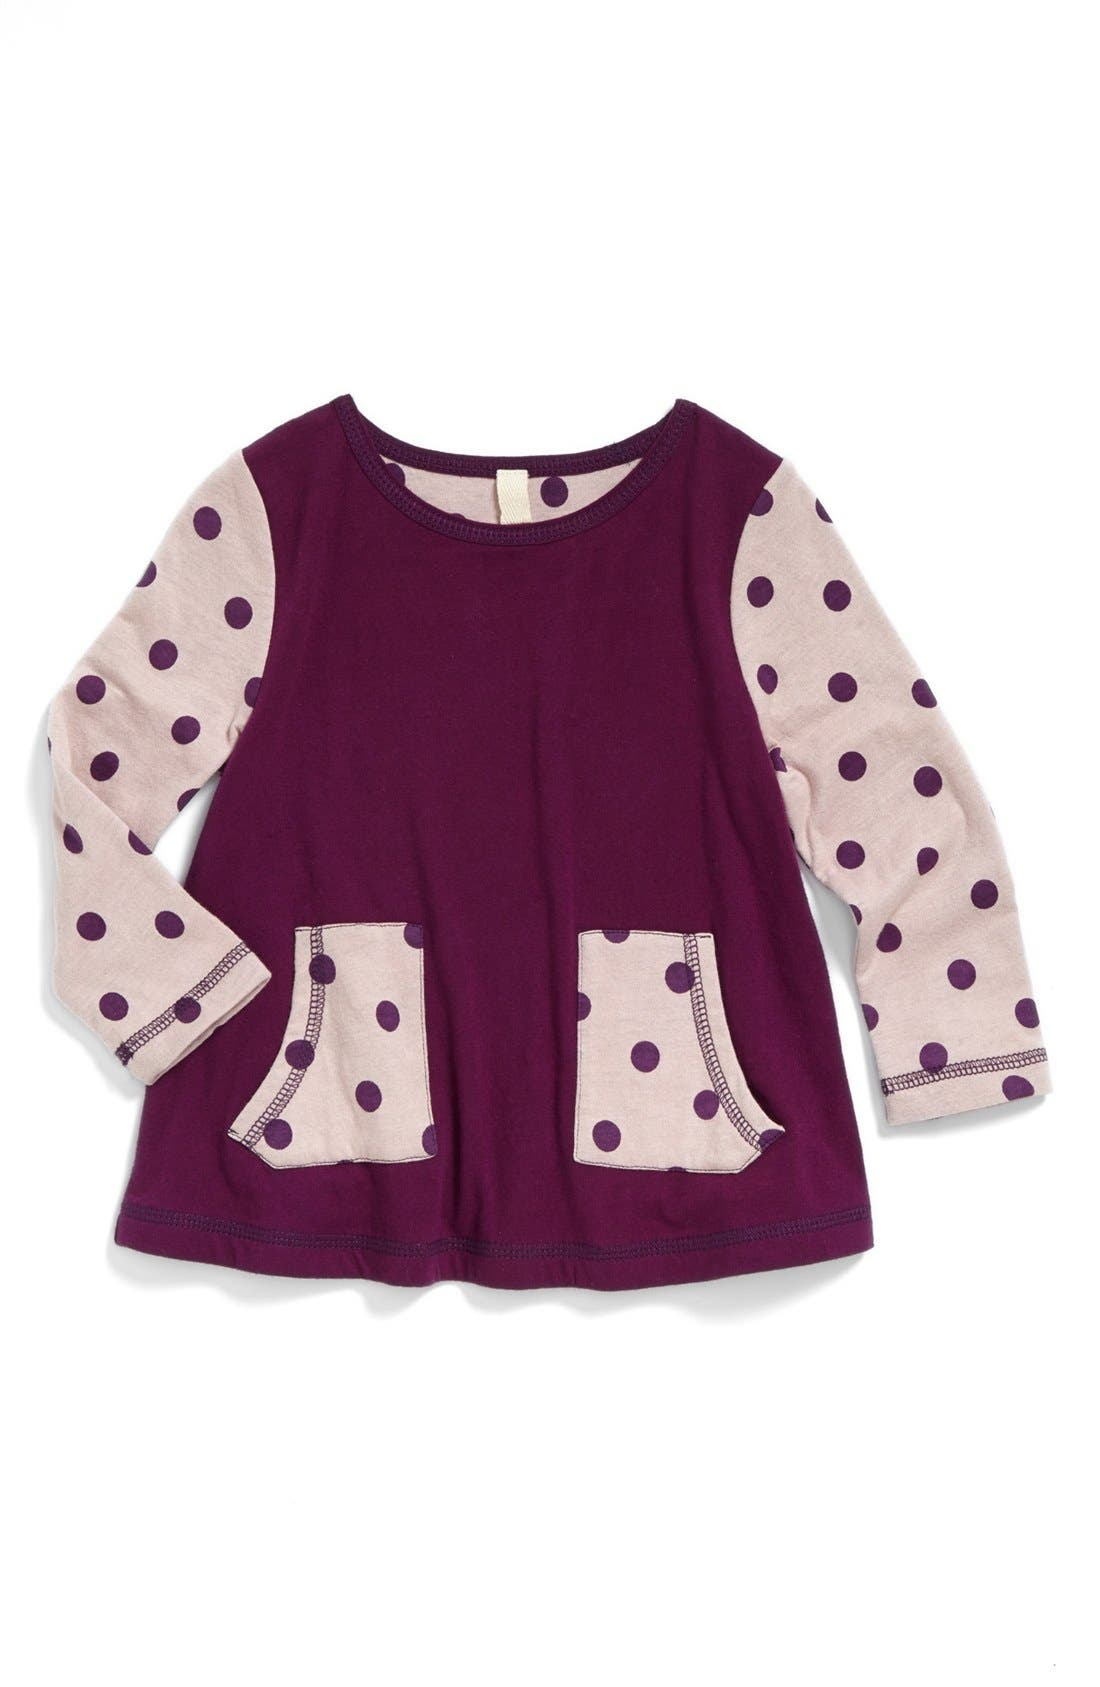 Main Image - Tucker + Tate 'Steph' Organic Cotton Tunic (Baby Girls)